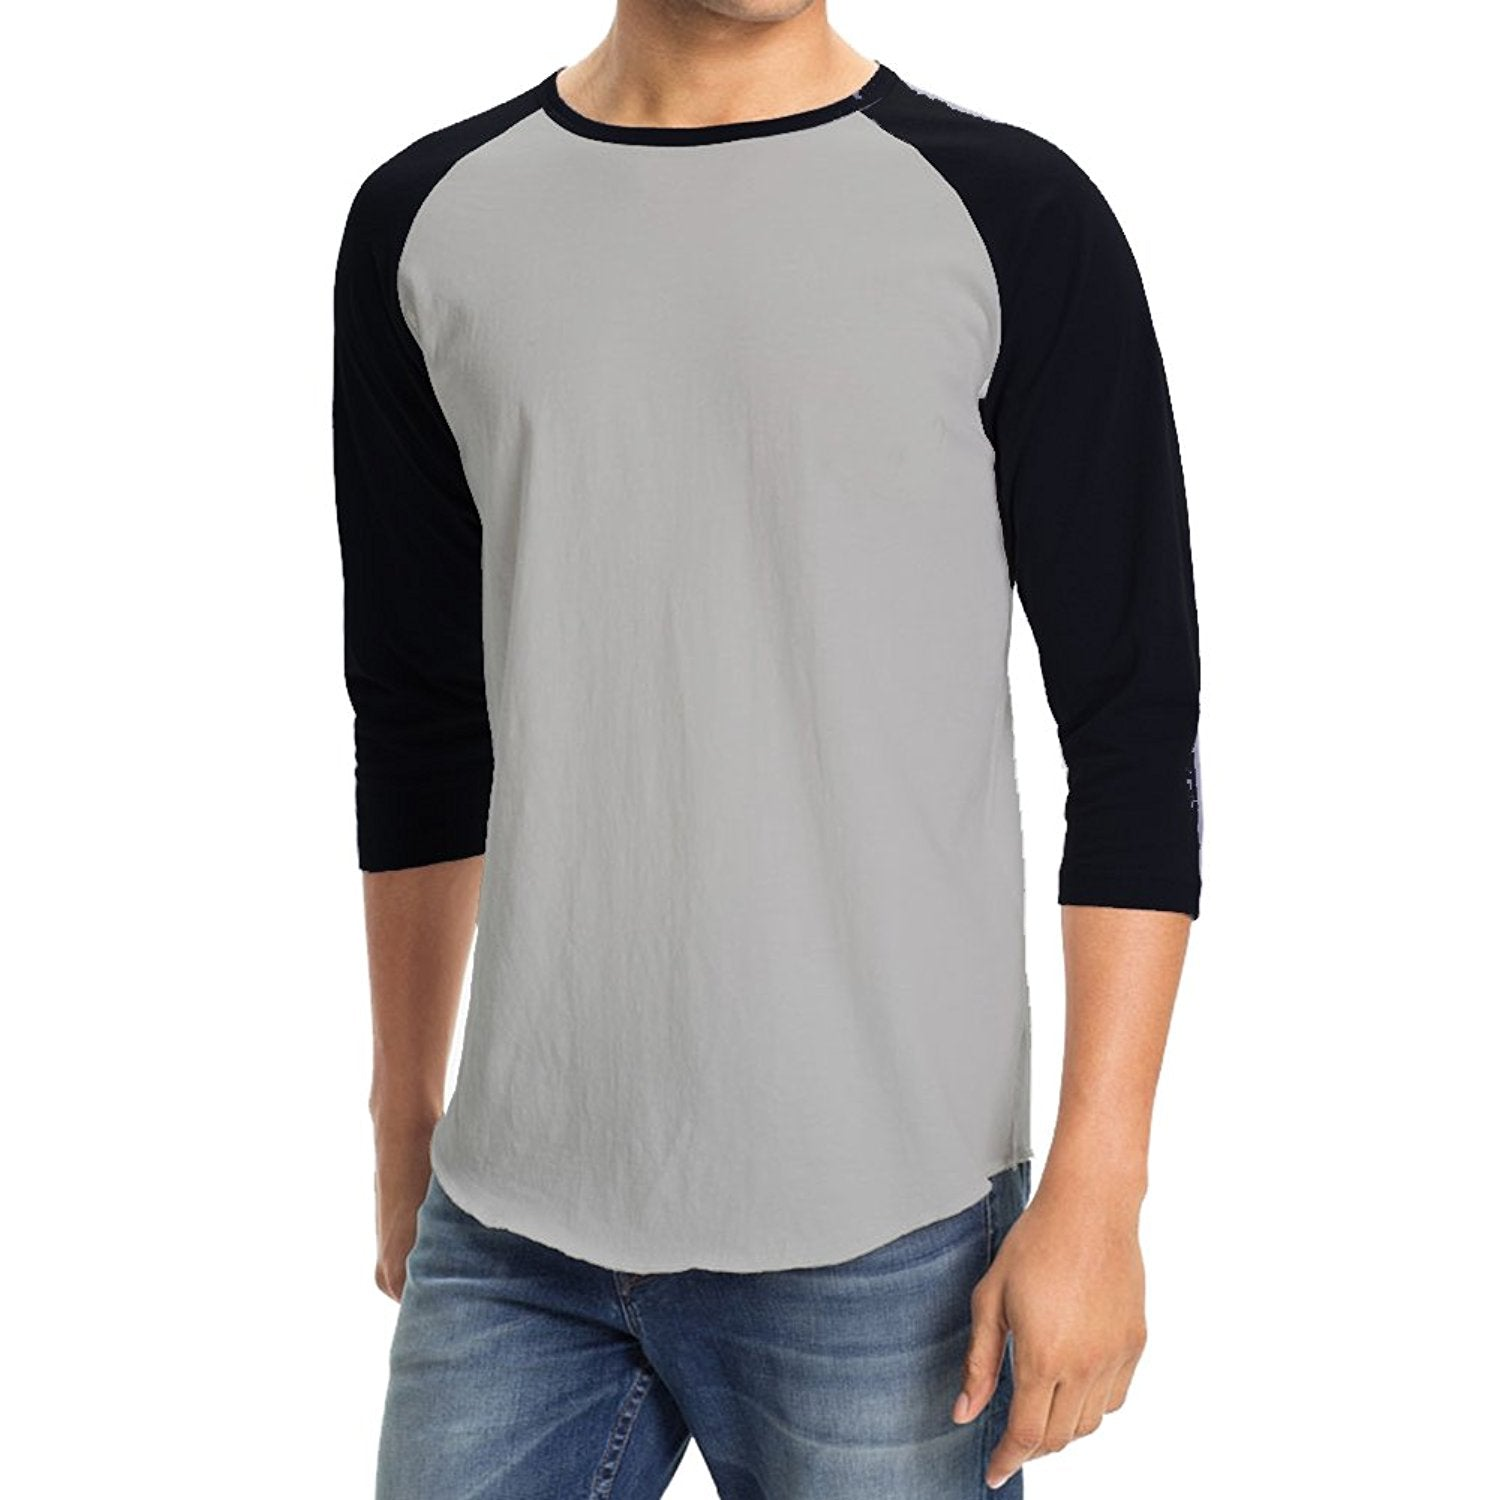 Hollywood Star Fashion Men's Plain Baseball Athletic 3/4 Sleeve Tee Shirt